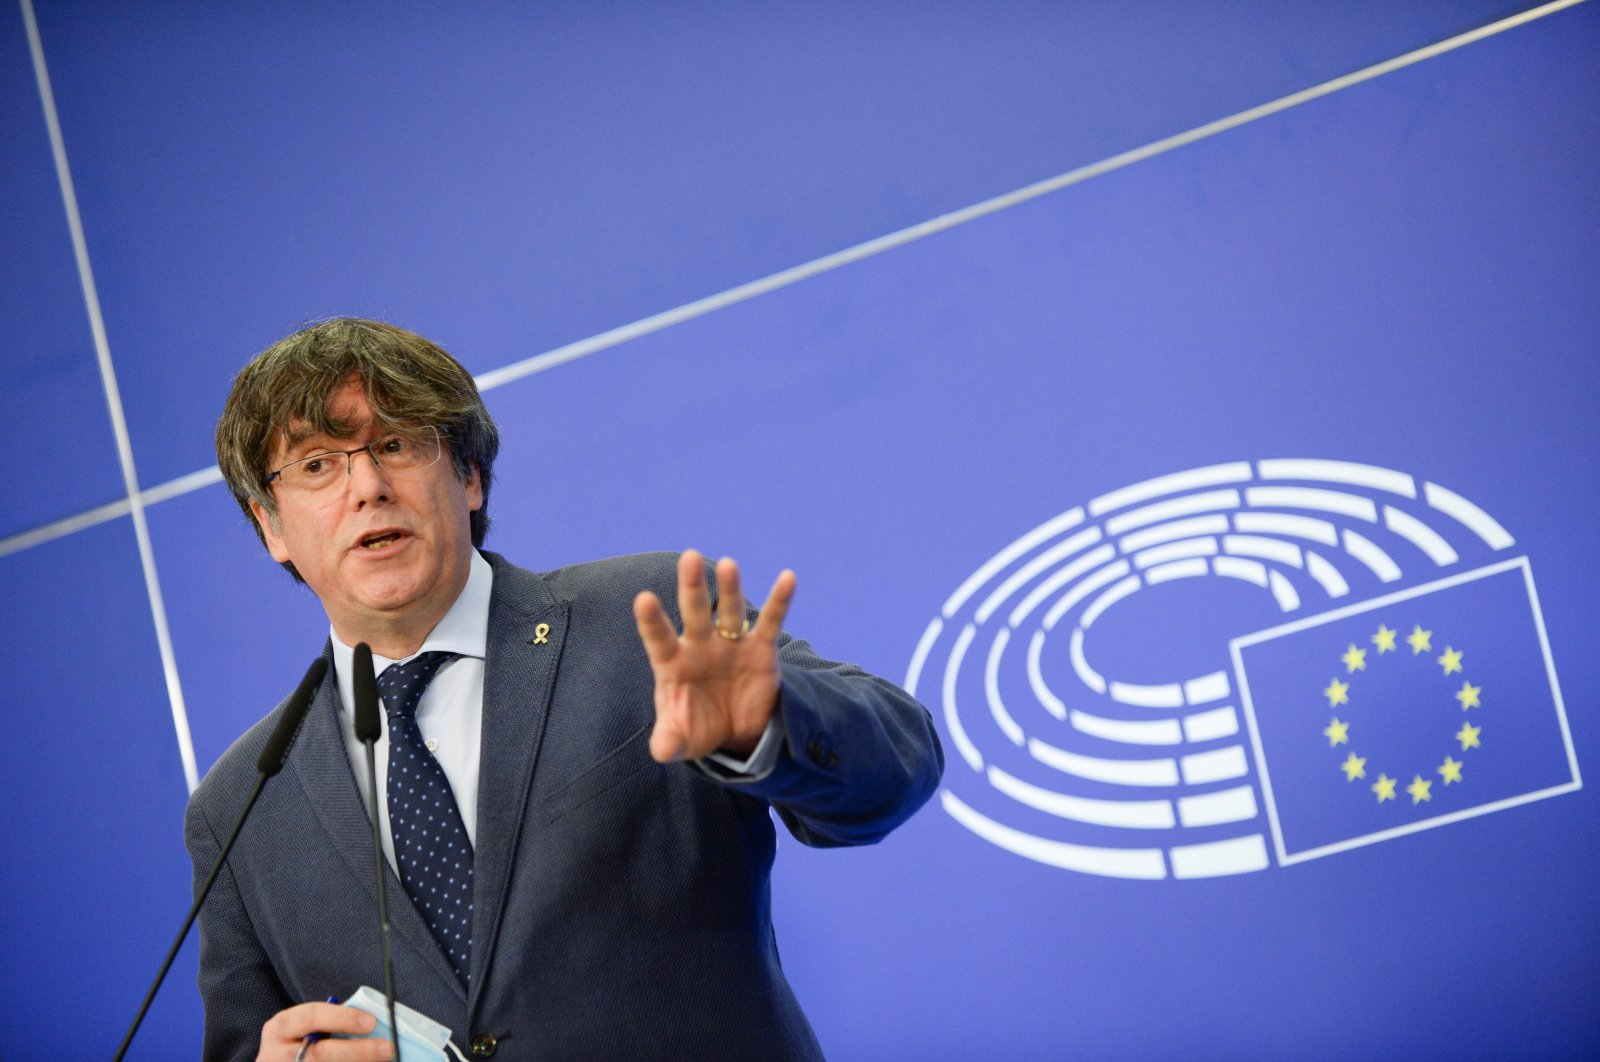 Former President of Catalonia Carles Puigdemont speaks at the European Parliament in Brussels, Belgium, Feb. 24, 2021. (Reuters Photo)